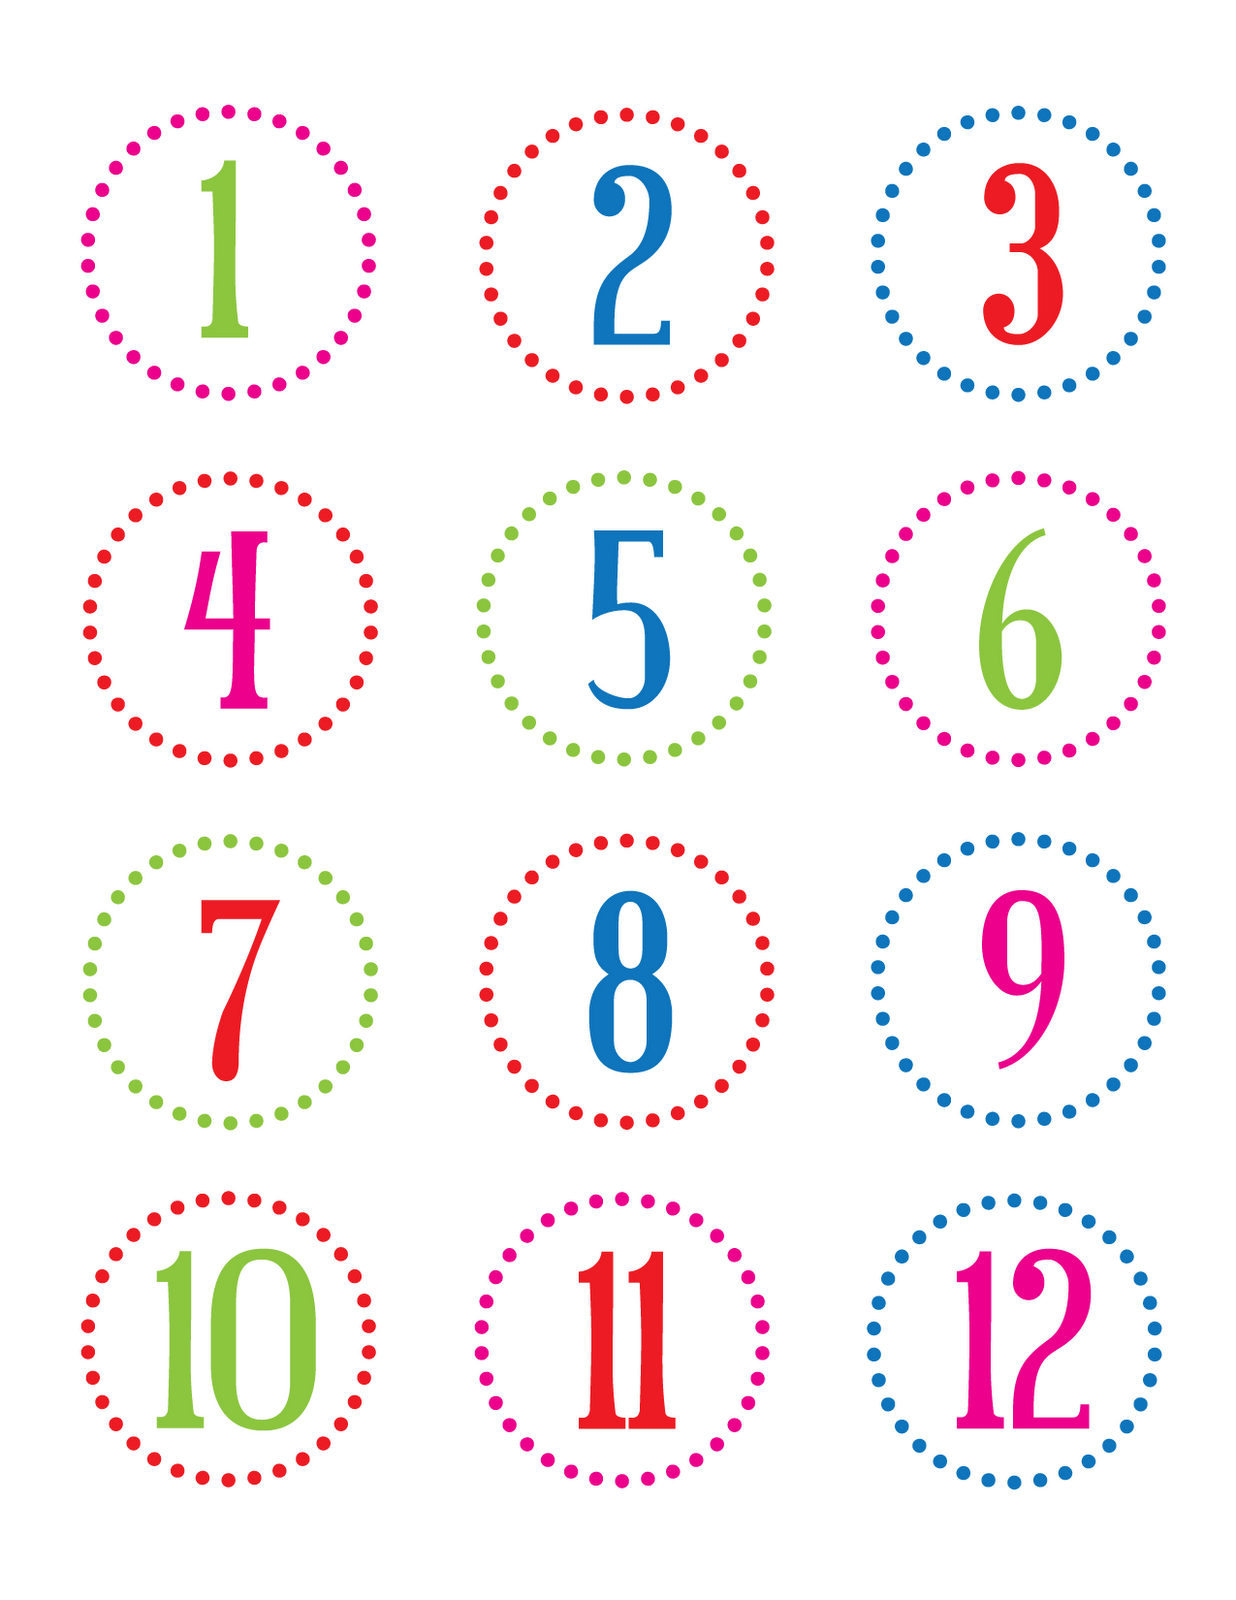 Refreshing image with regard to numbers printable